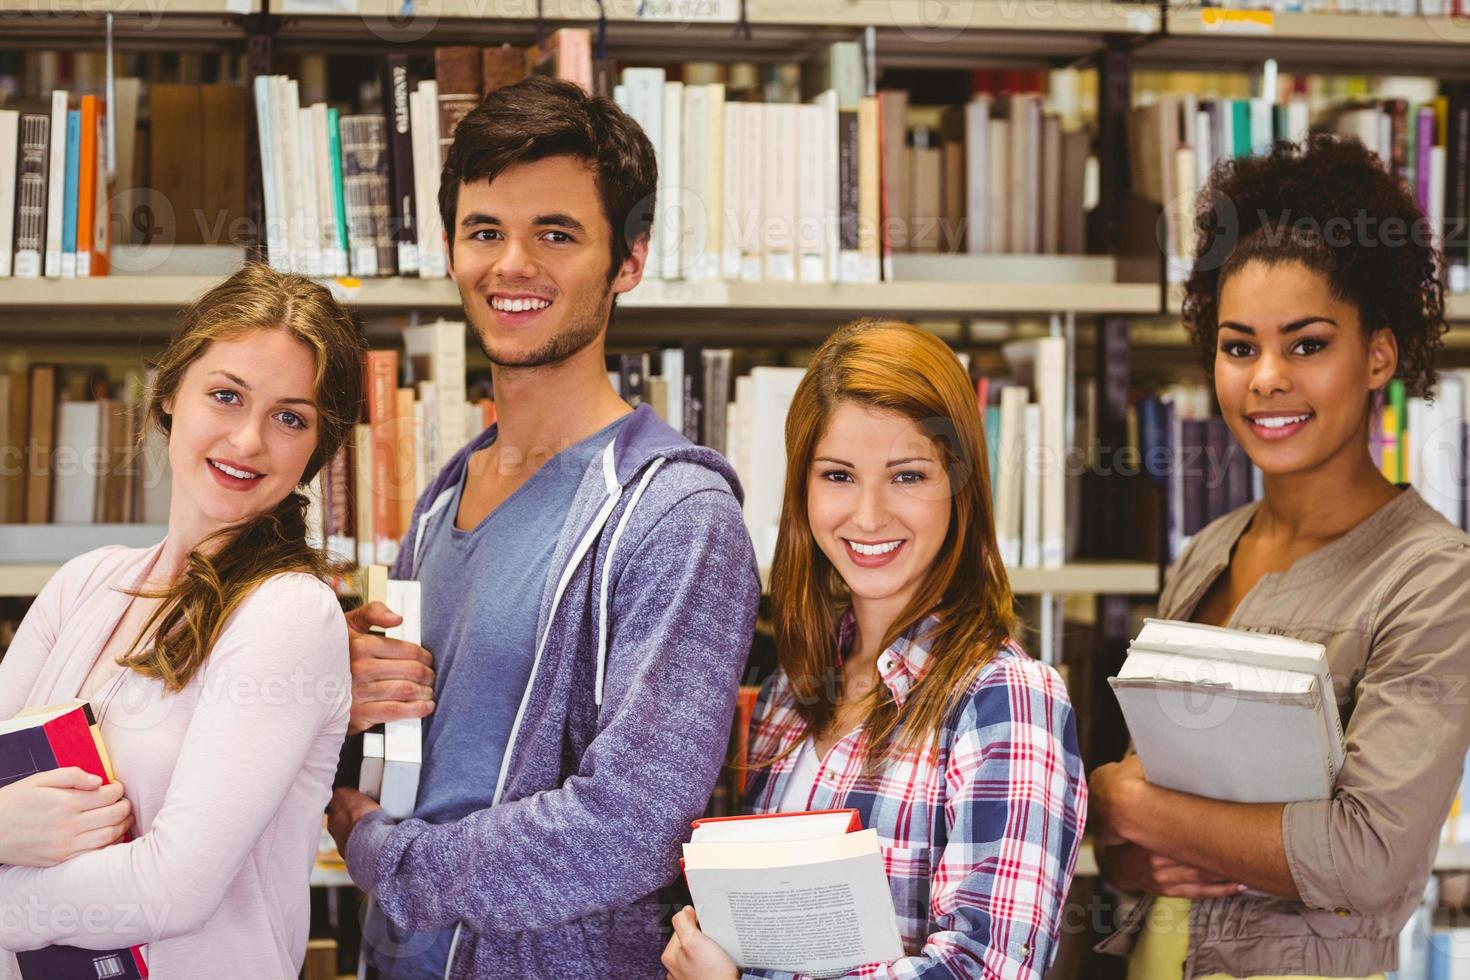 Students in a line smiling at camera holding books photo